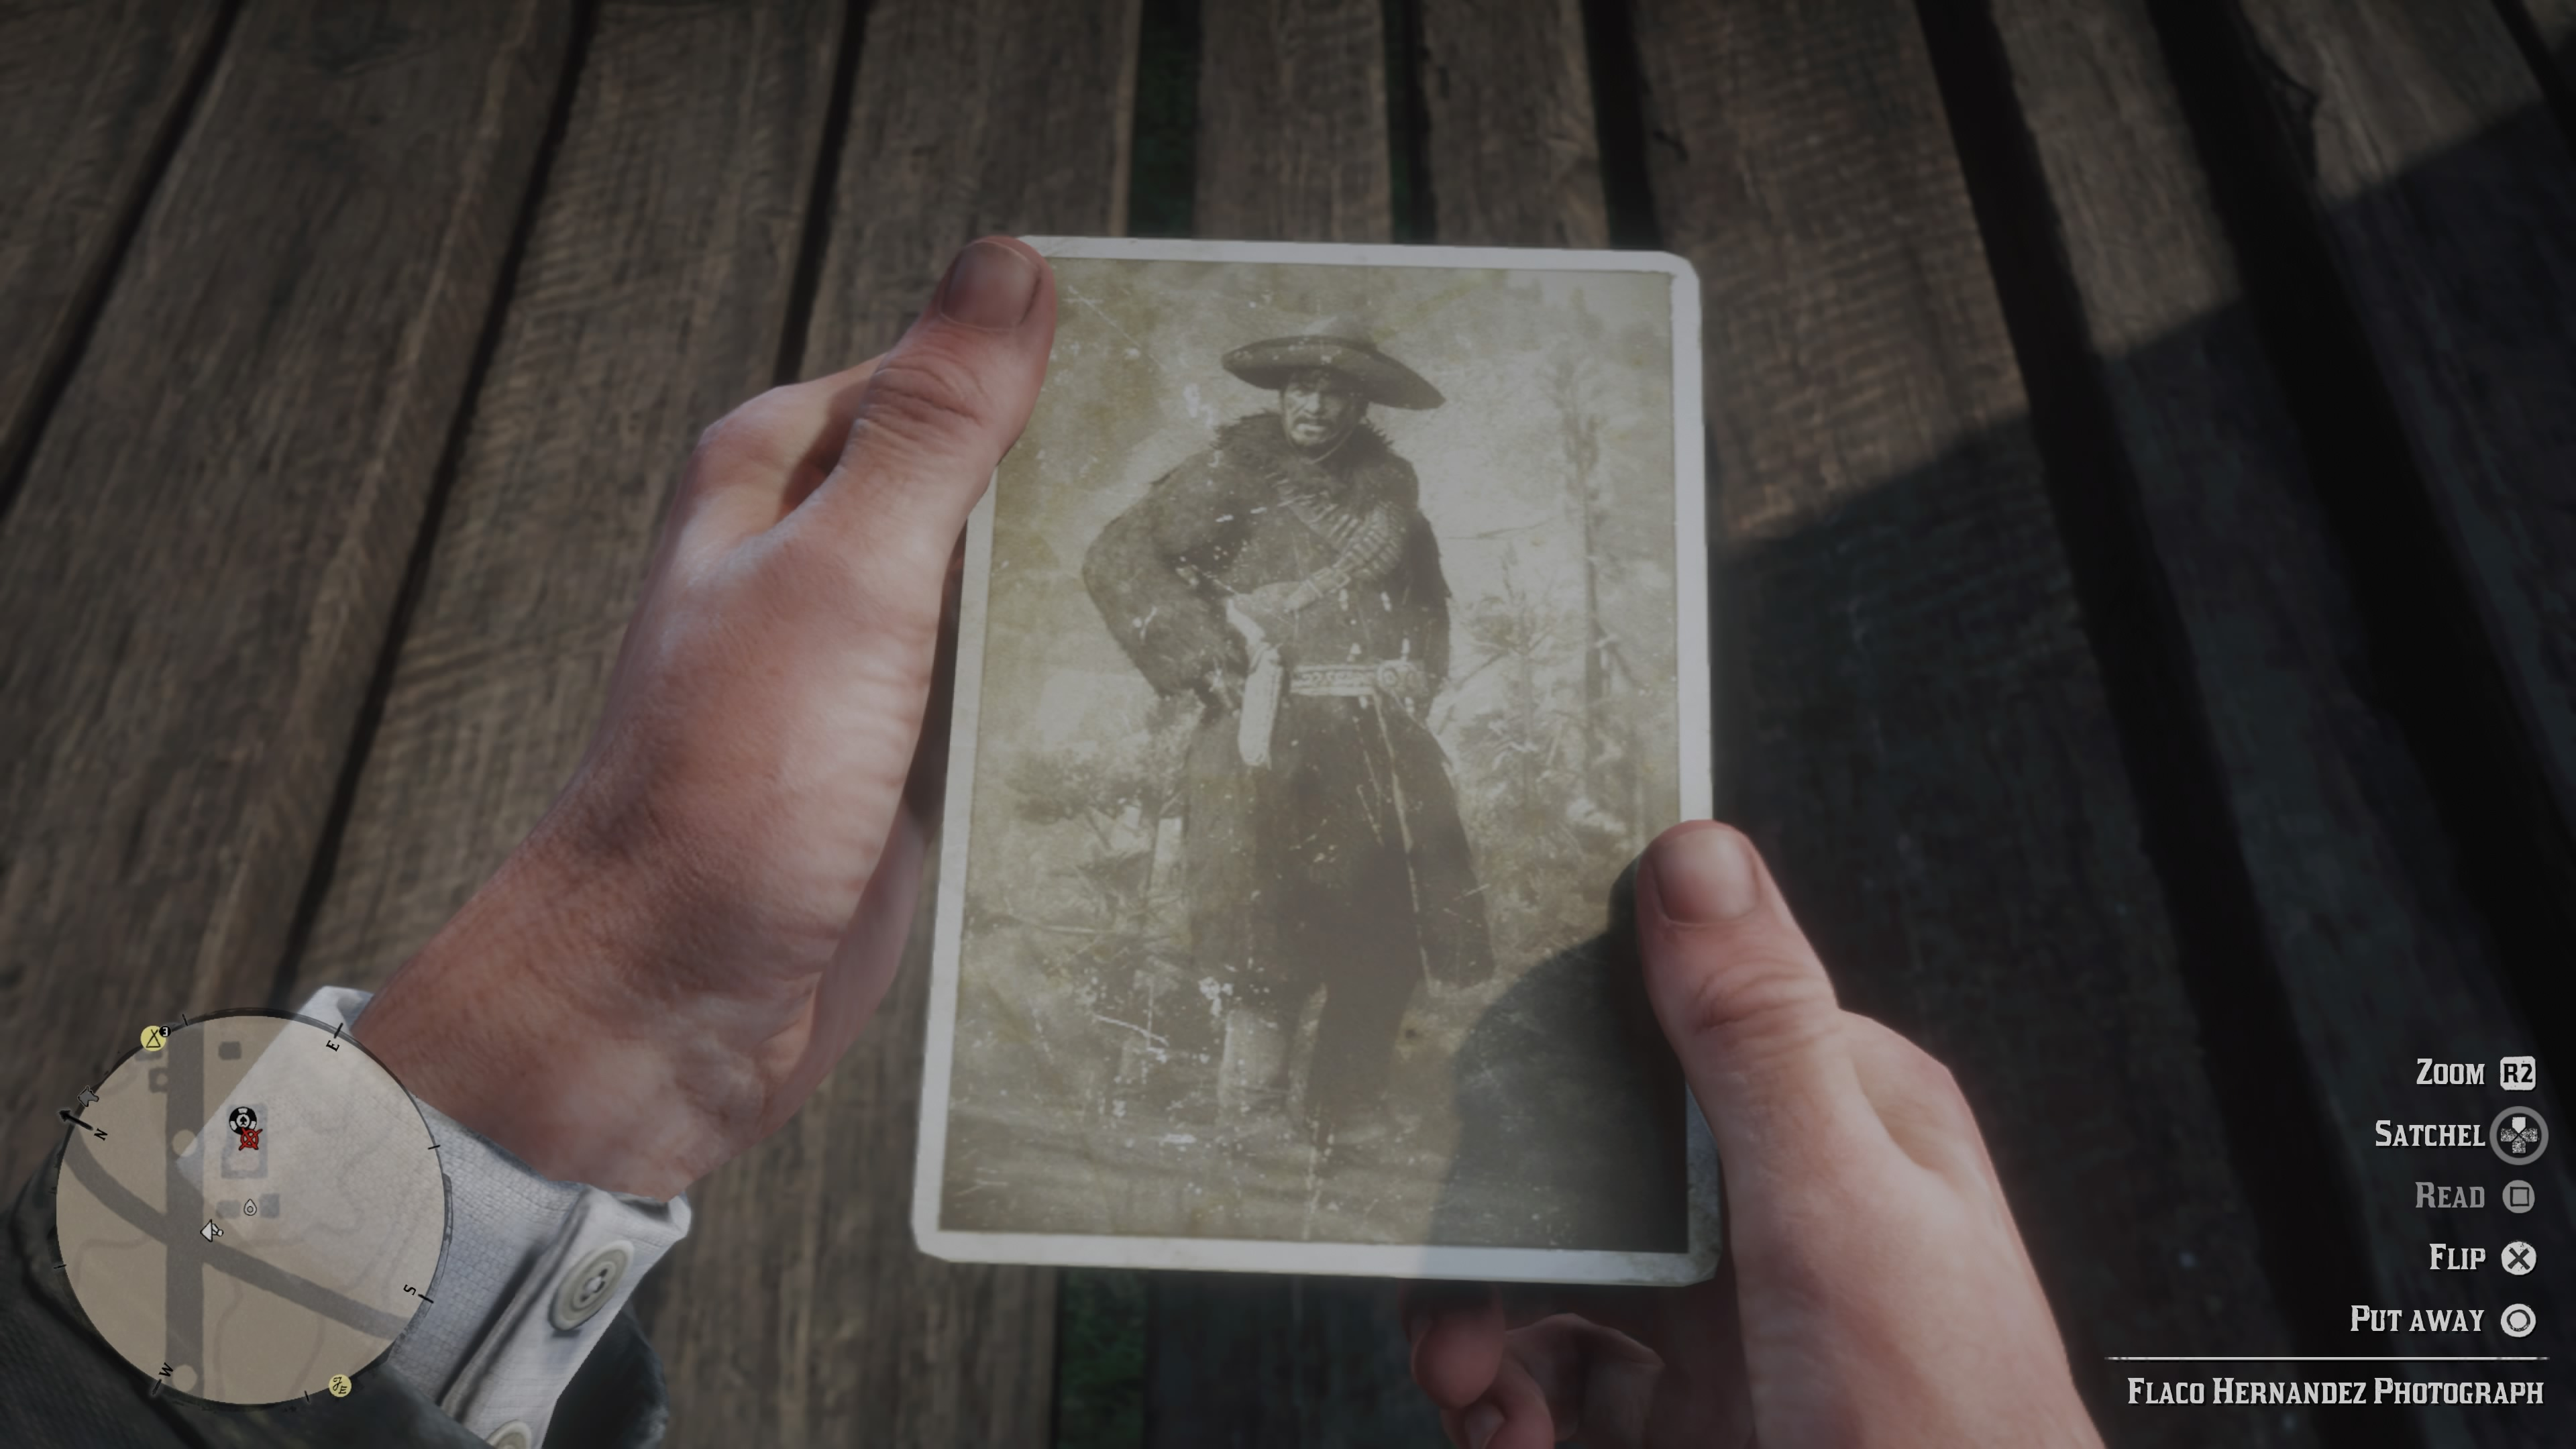 Red Dead Redemption 2 The Noblest of Men, and a Woman Wiki Guide 5